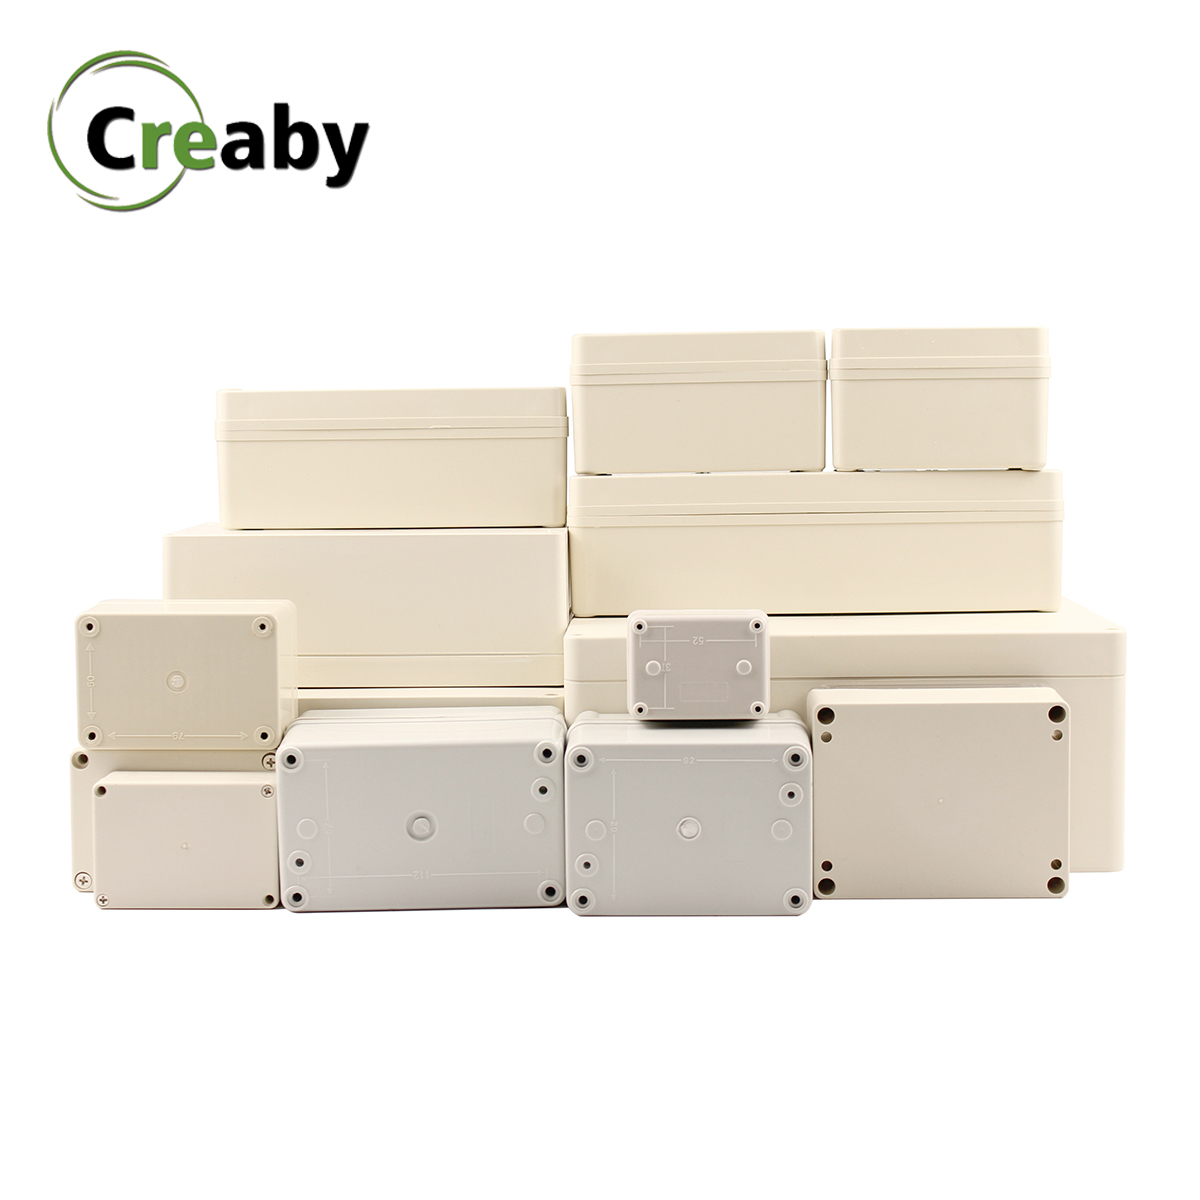 1PC DIY Electronic Box ABS Plastic Waterproof Junction Box Electrical Transparent Cover Enclosure Waterproof Junction Case